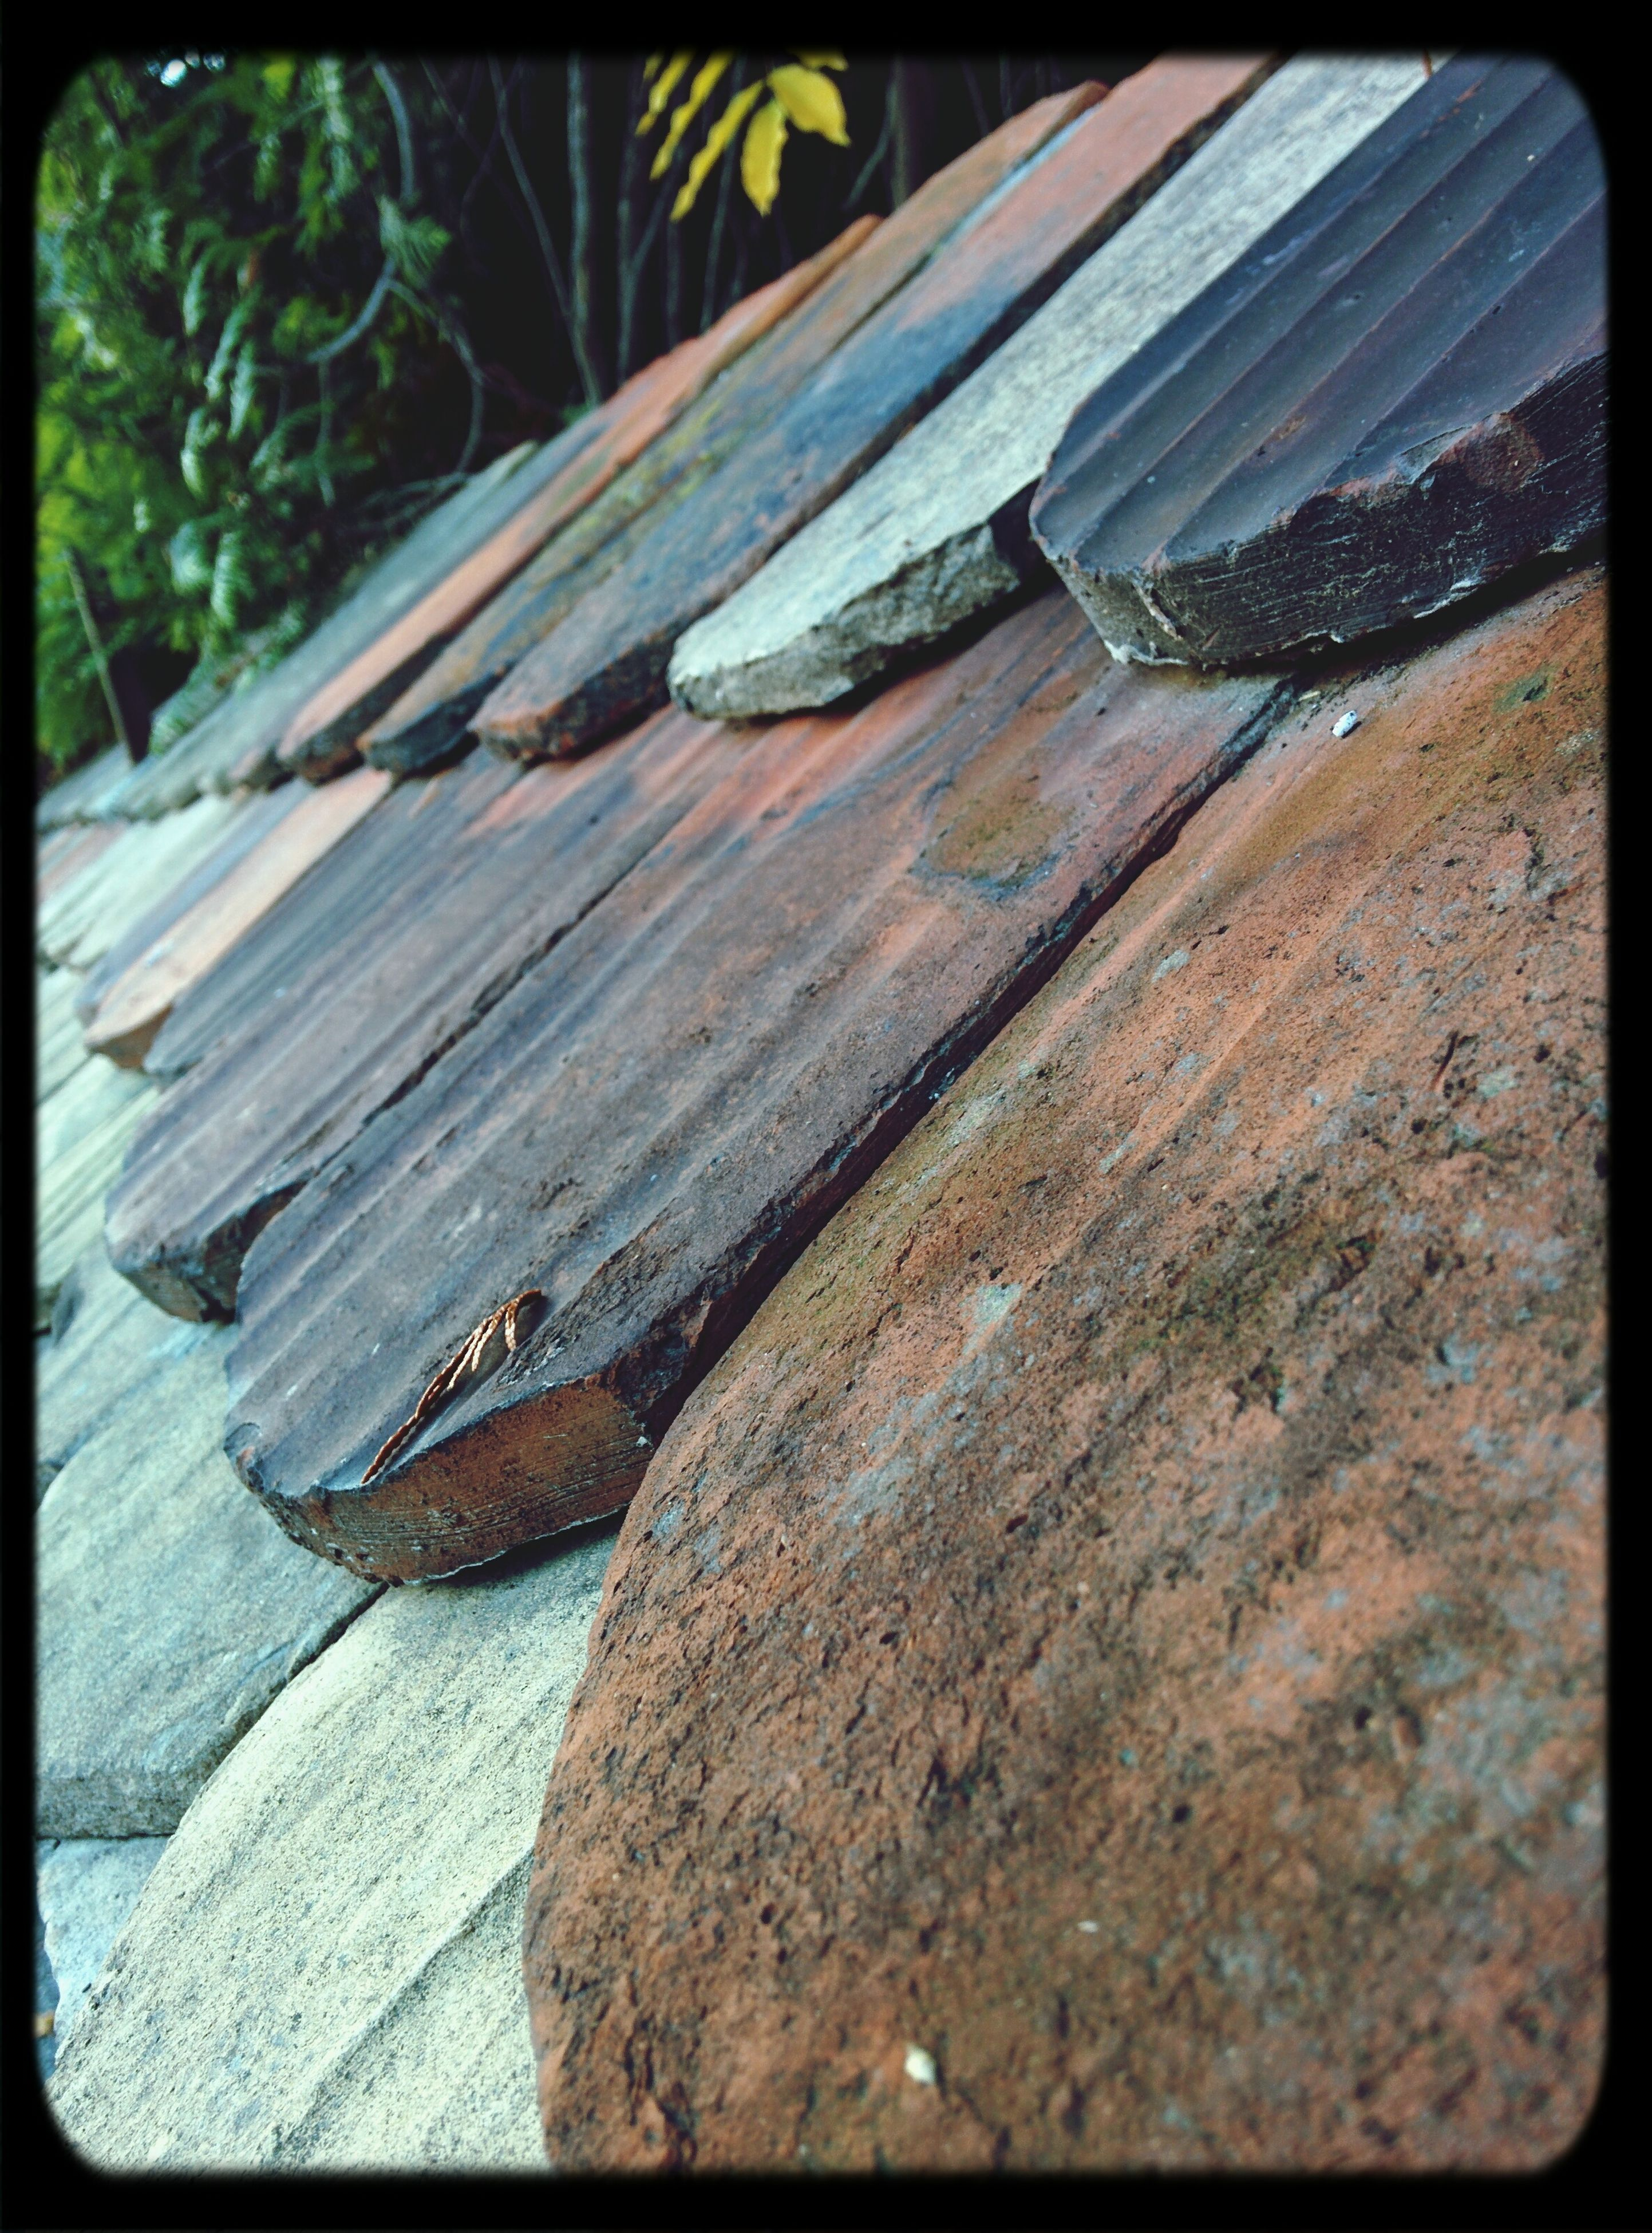 transfer print, auto post production filter, wood - material, close-up, day, wood, outdoors, high angle view, no people, sunlight, abandoned, nature, selective focus, wooden, old, focus on foreground, damaged, frame, plank, textured